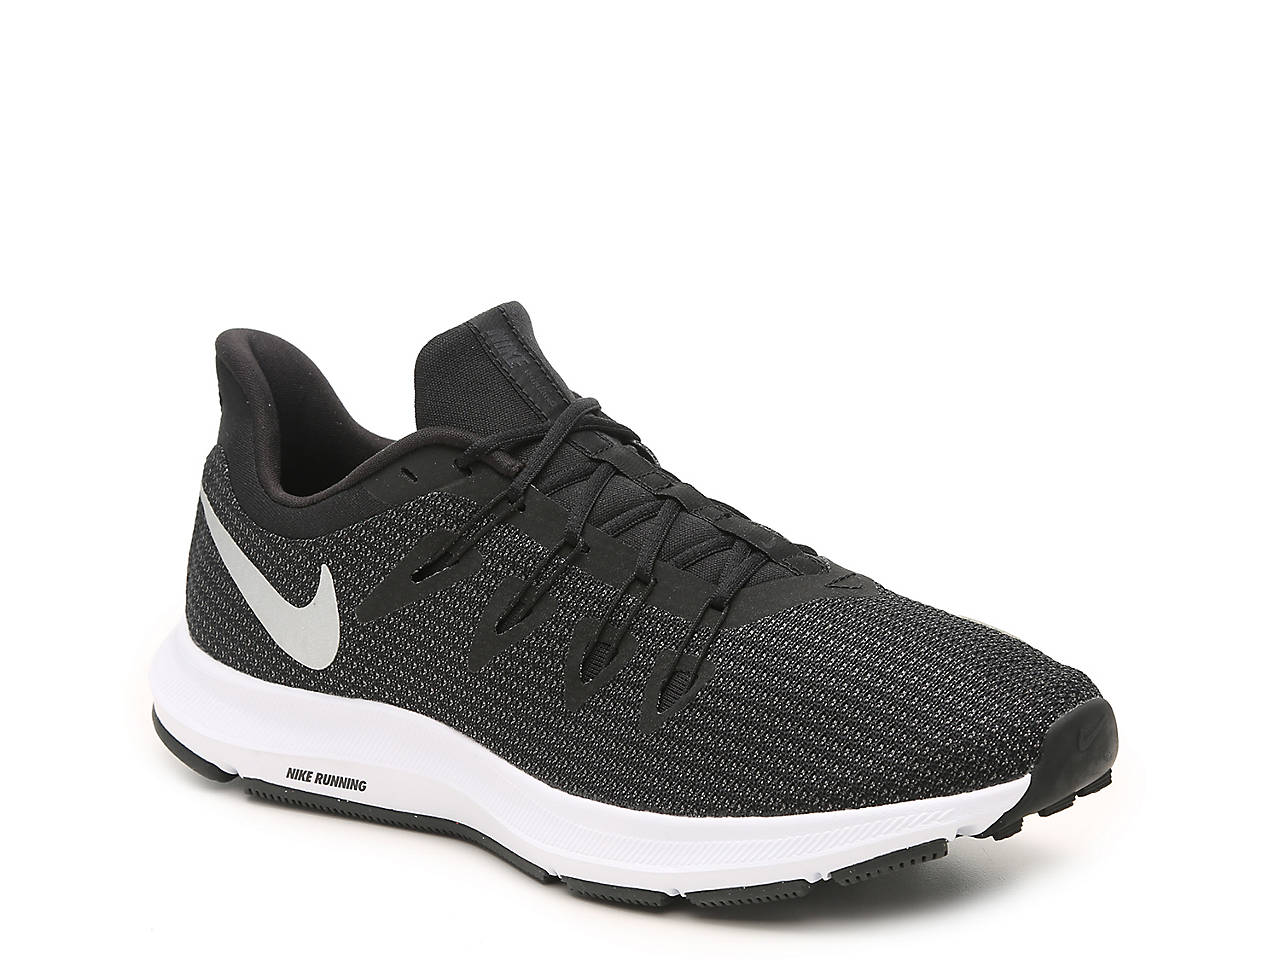 Discount Nike Shoes Men,Discount Nike Shoes For Men,Shoppe